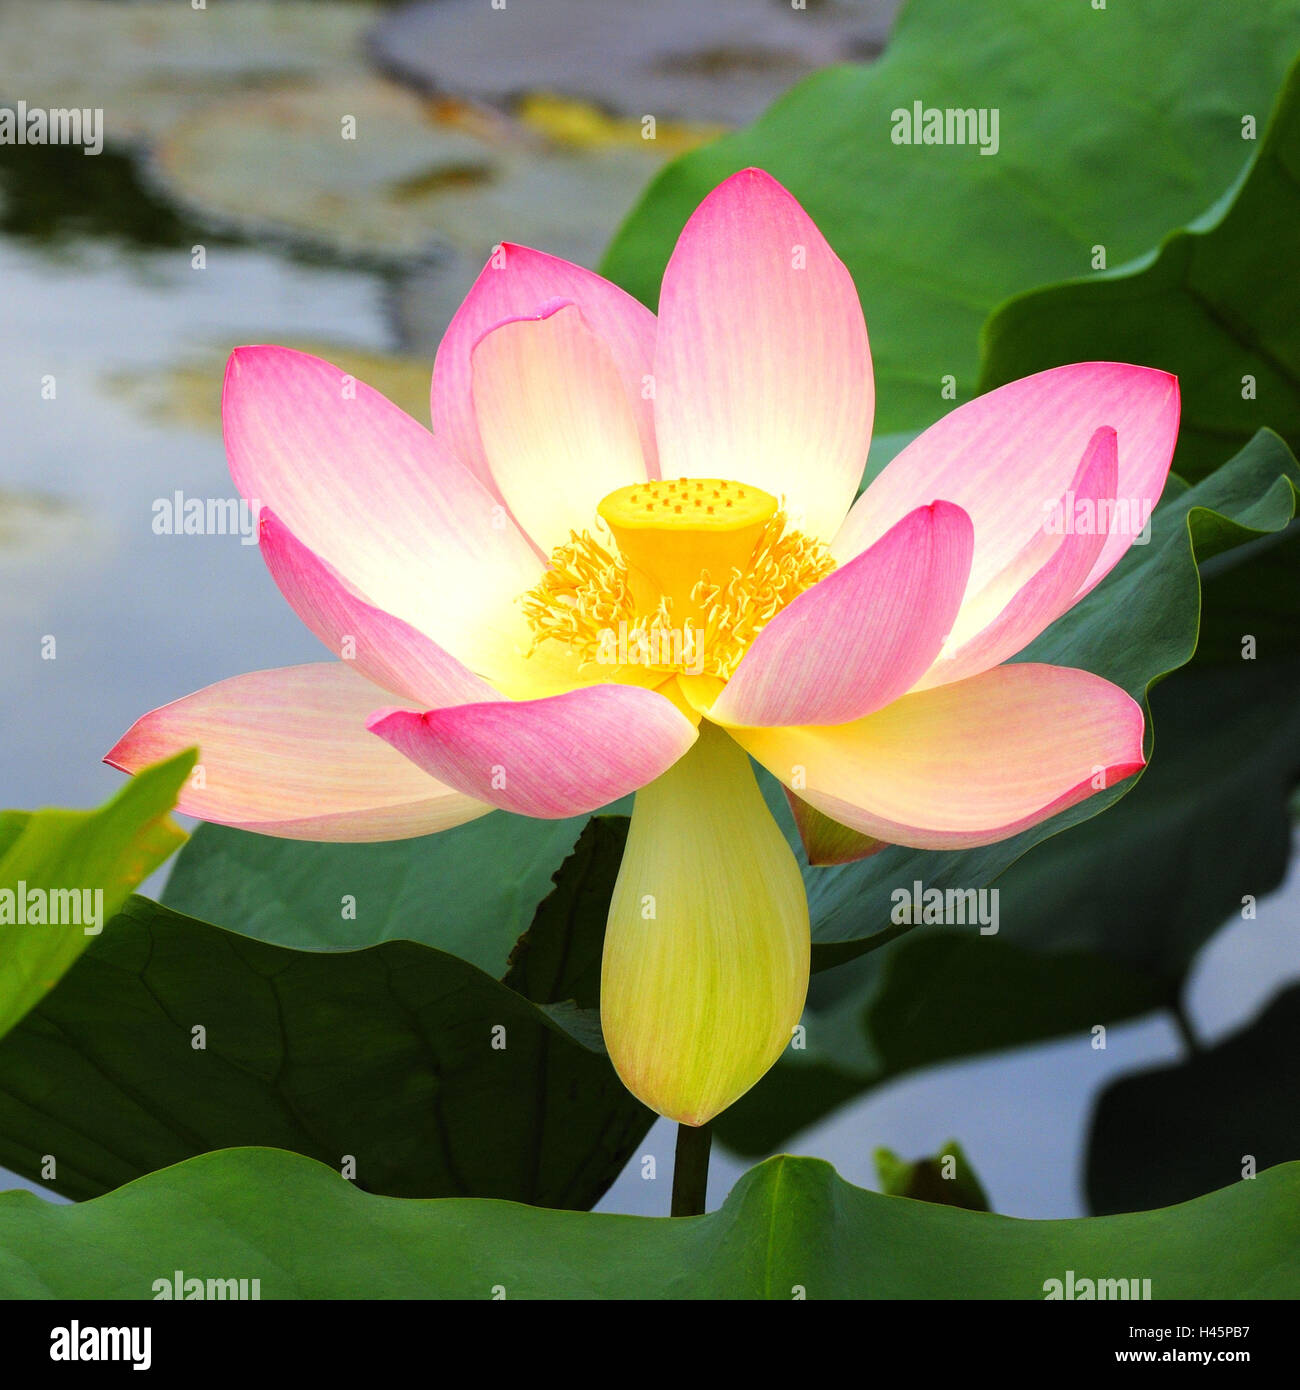 Indian lotus flower leaves stock photos indian lotus flower leaves indian lotus flower nelumbo nucifera stock image mightylinksfo